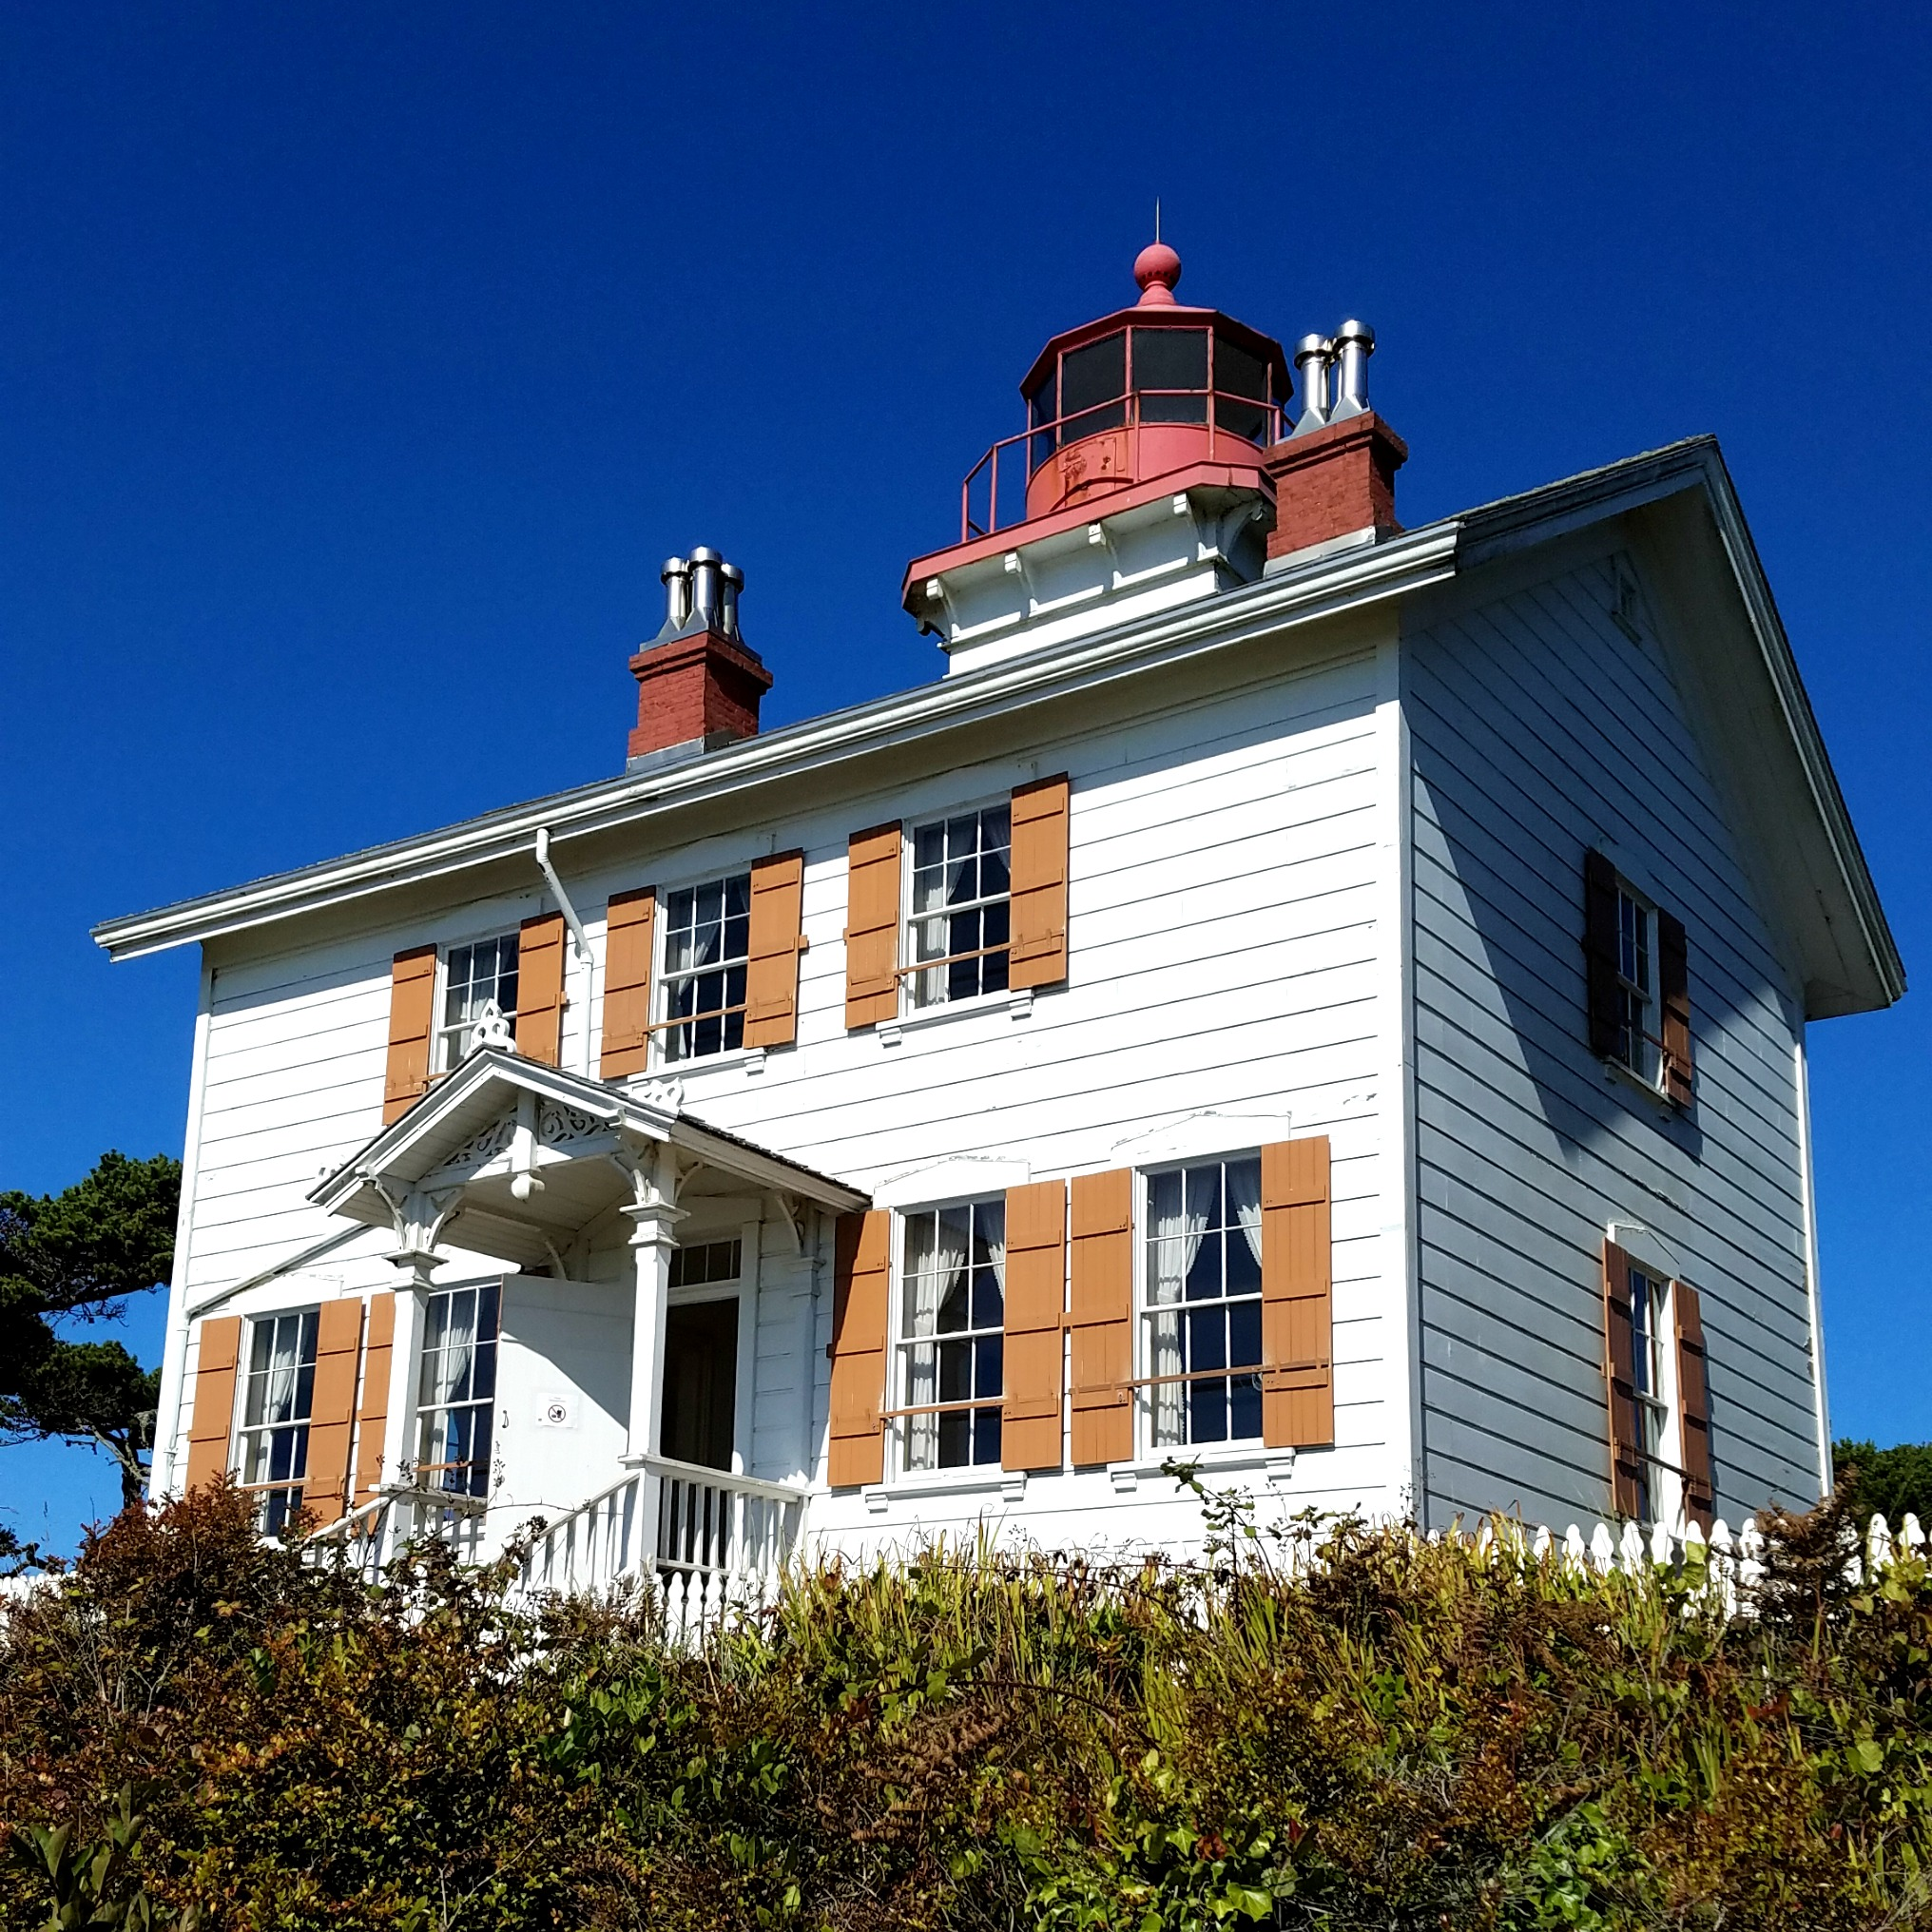 Yaquina Bay Lighthouse near Newport, Oregon